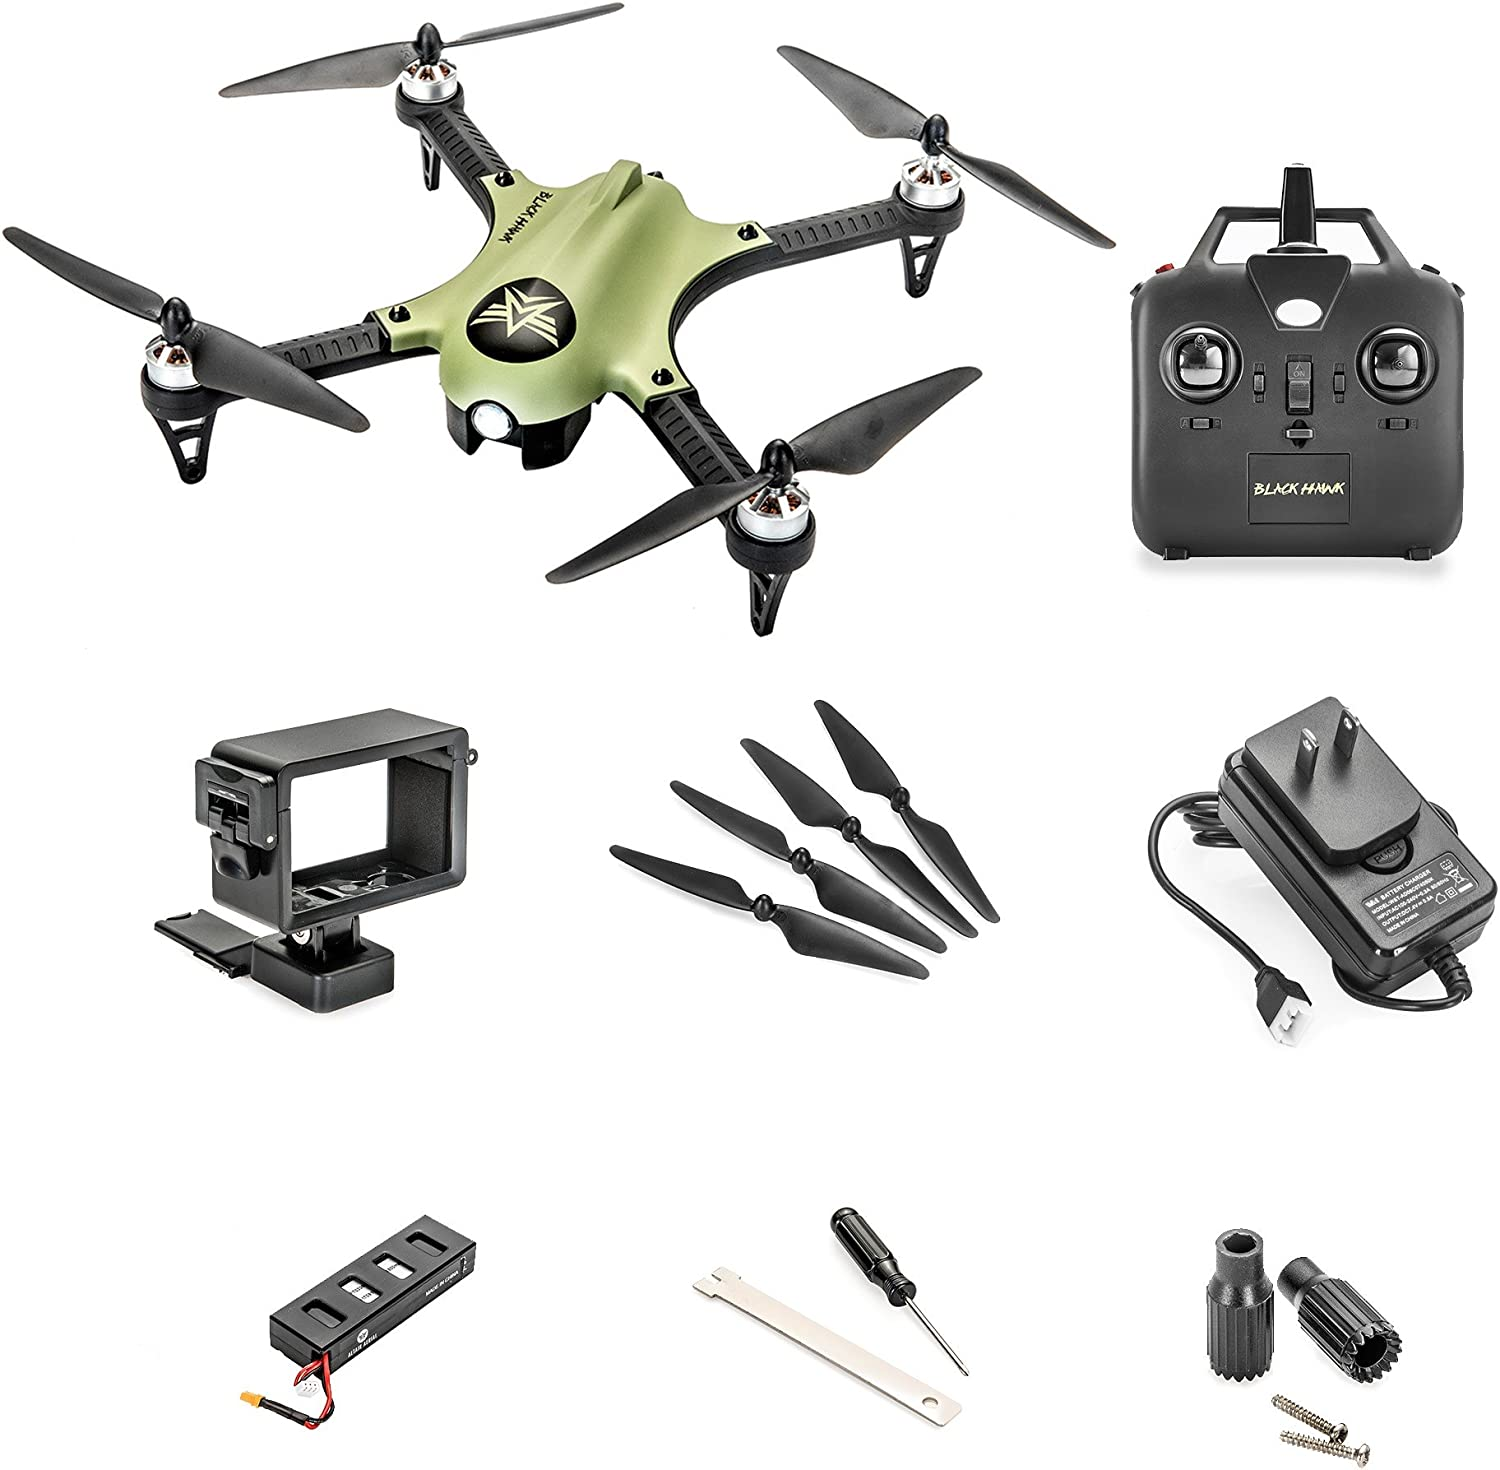 Altair Aerial Blackhawk review and instruction to use